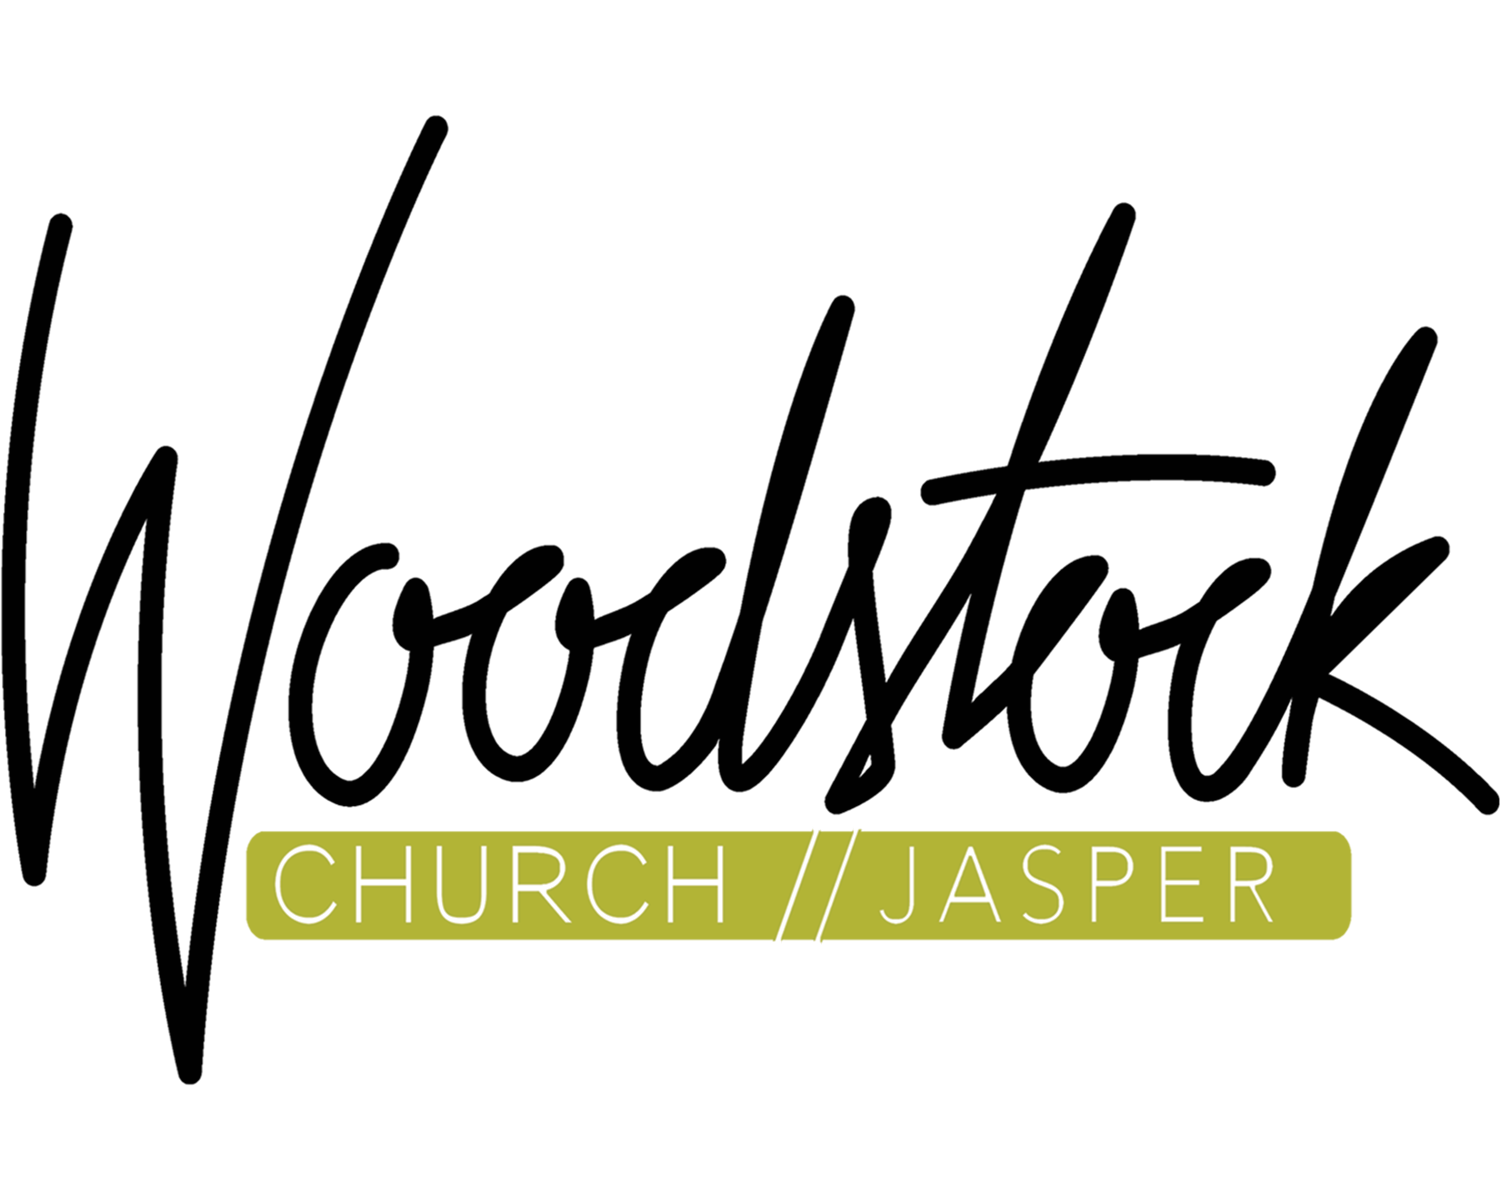 Woodstock Church Jasper